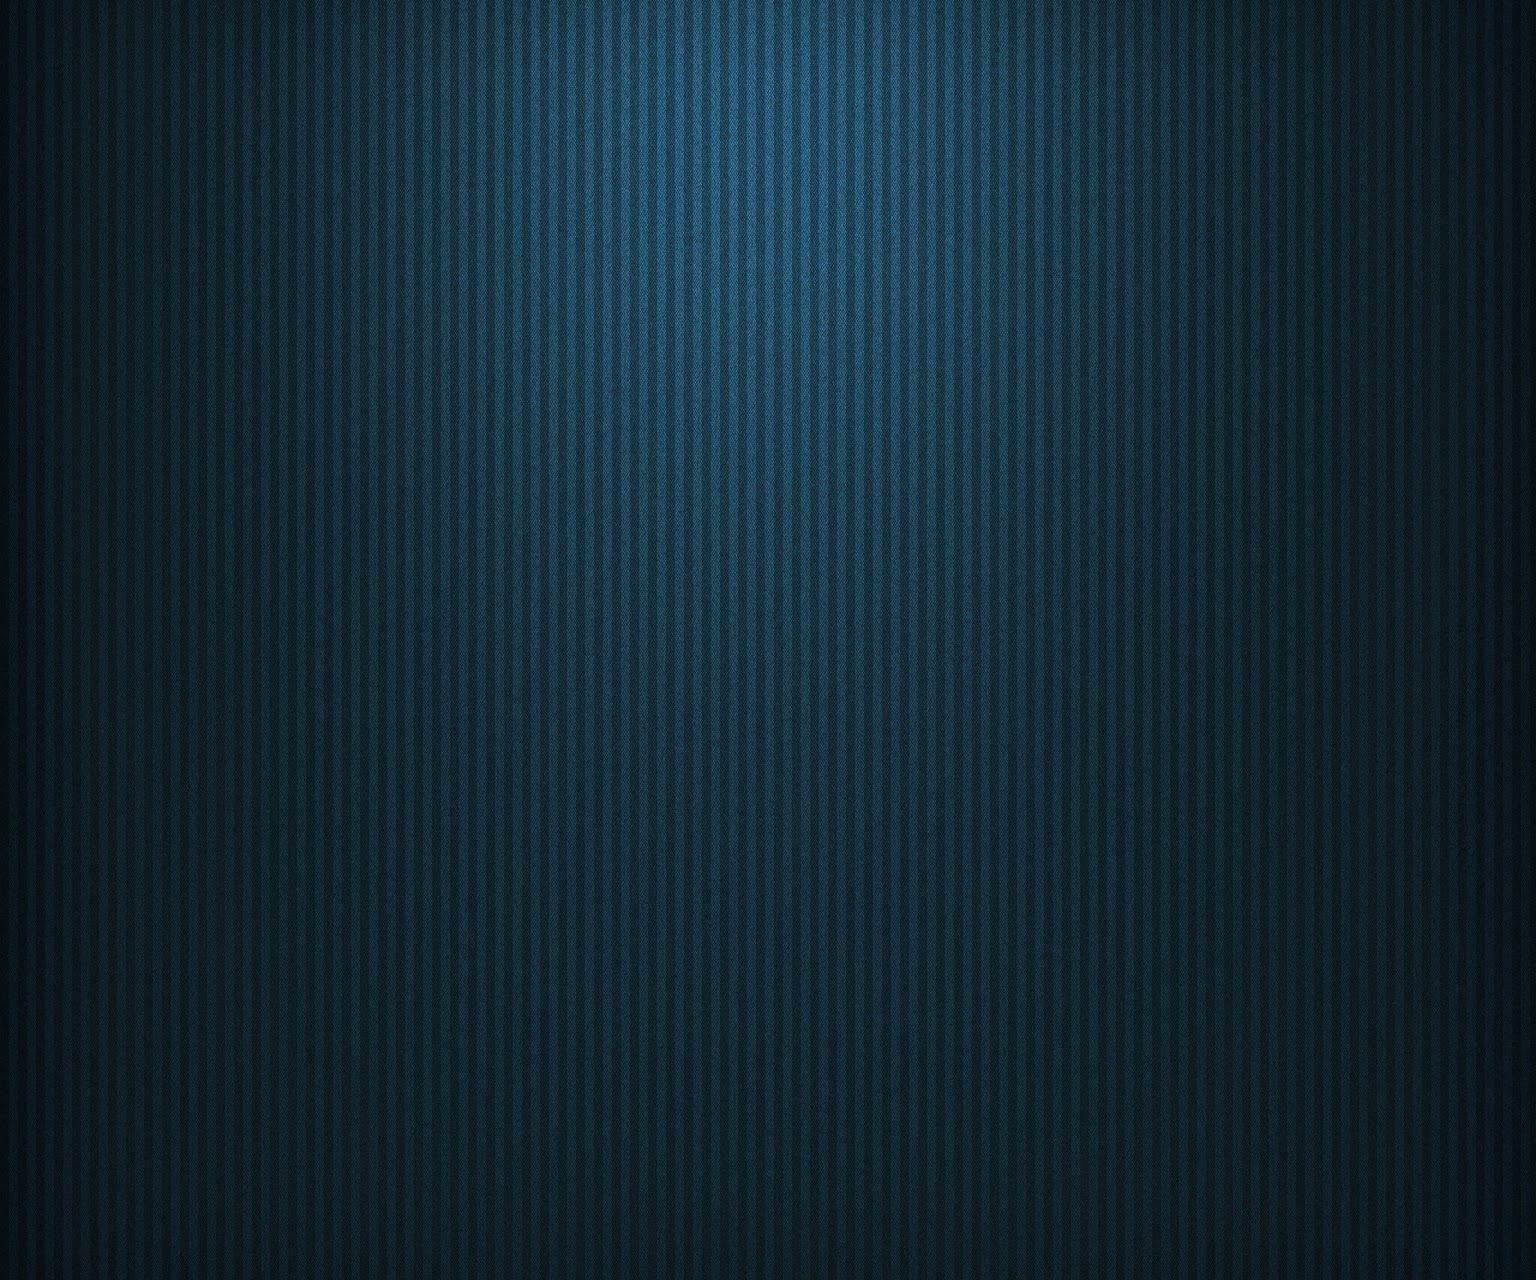 Download BB 10 Wallpapers Simple 1536x1280 - BlackBerry 10